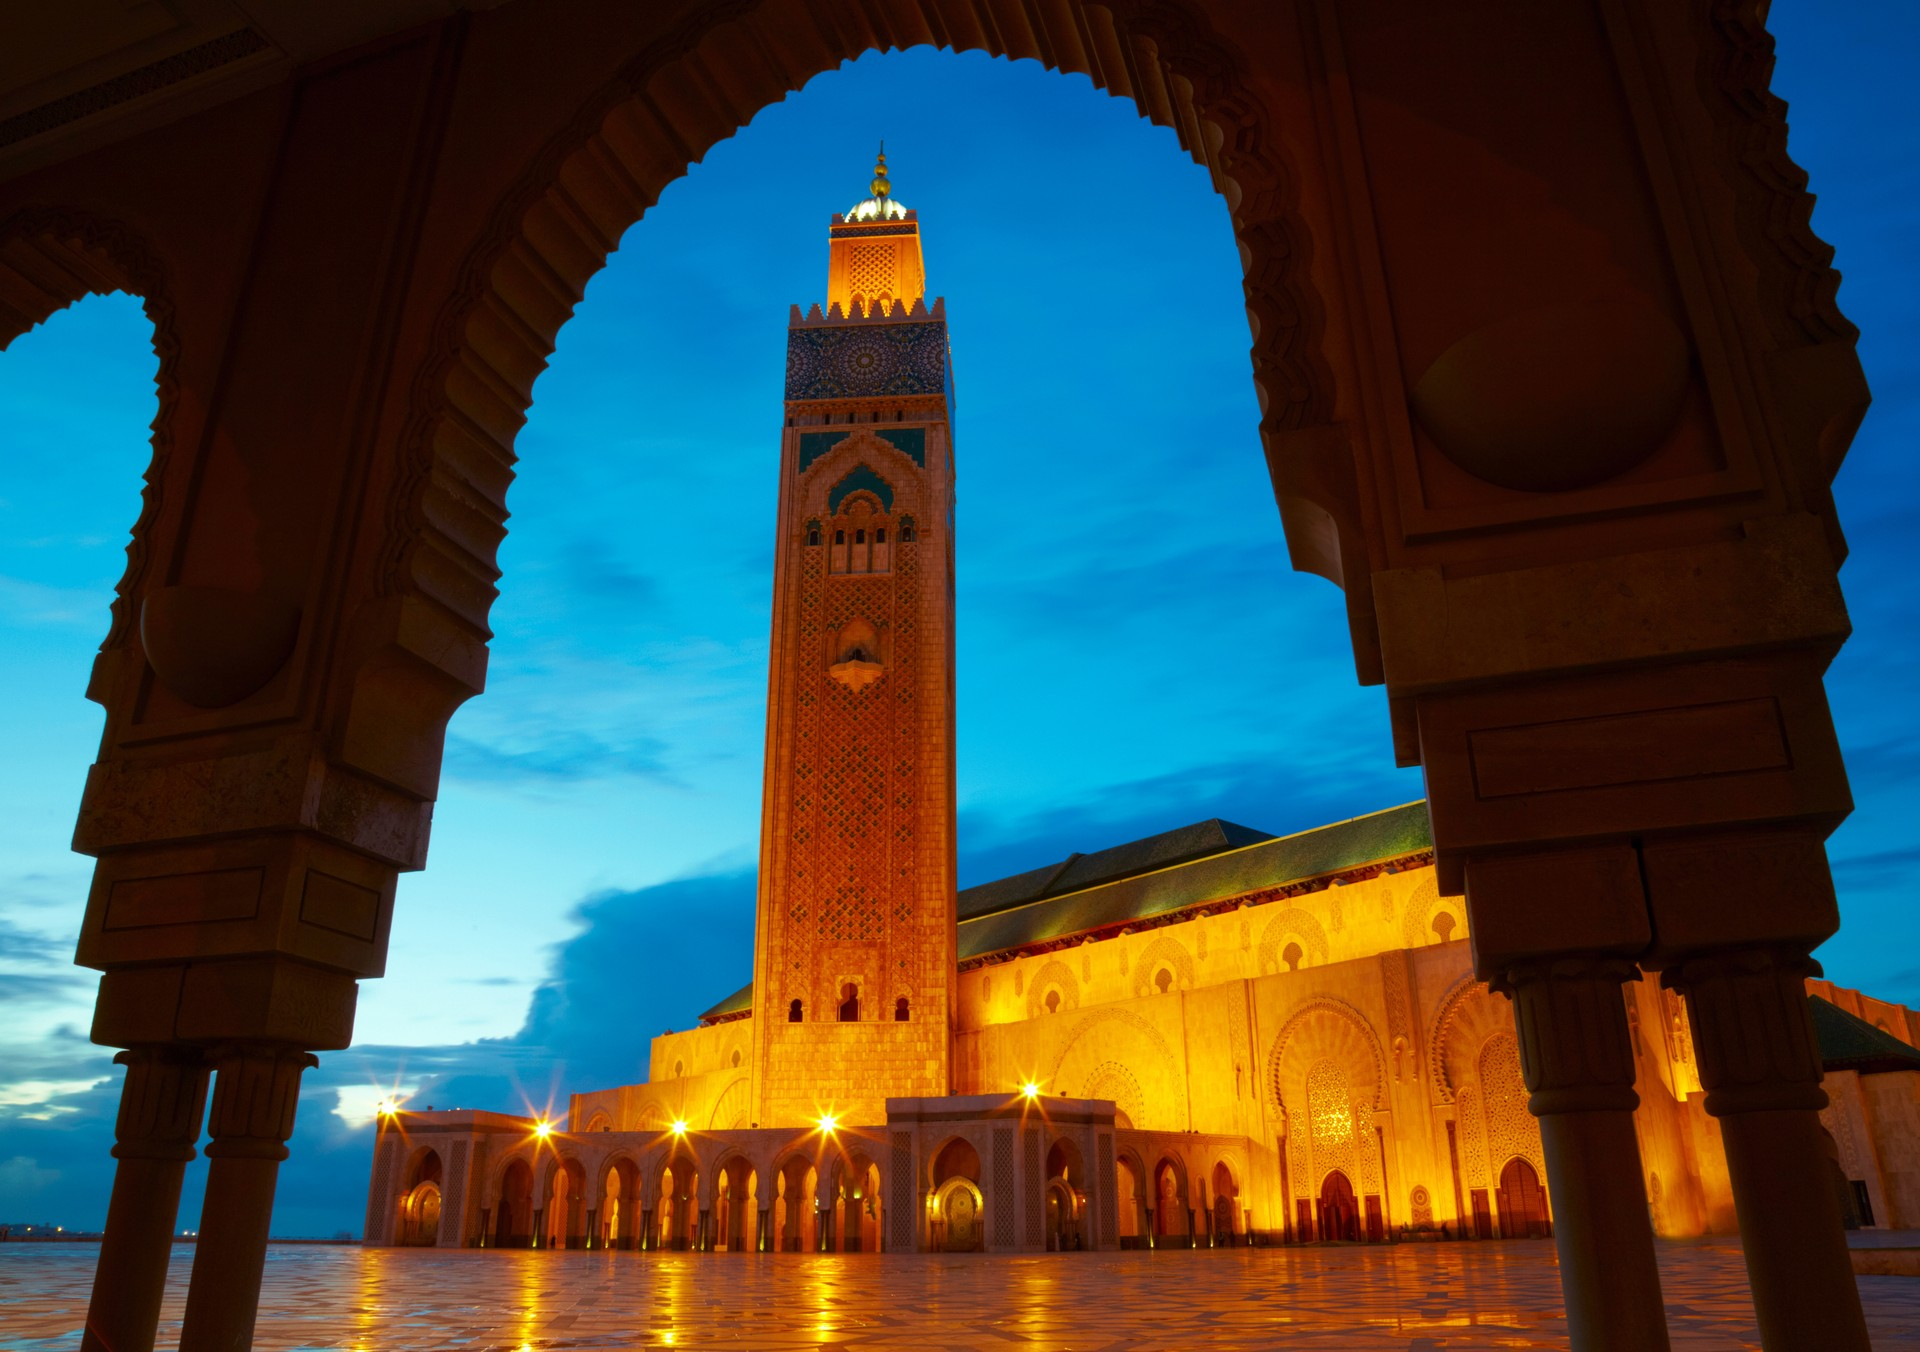 My 1001 Nights: Tales and Adventures from Morocco by Alice Morrison is set in Morocco